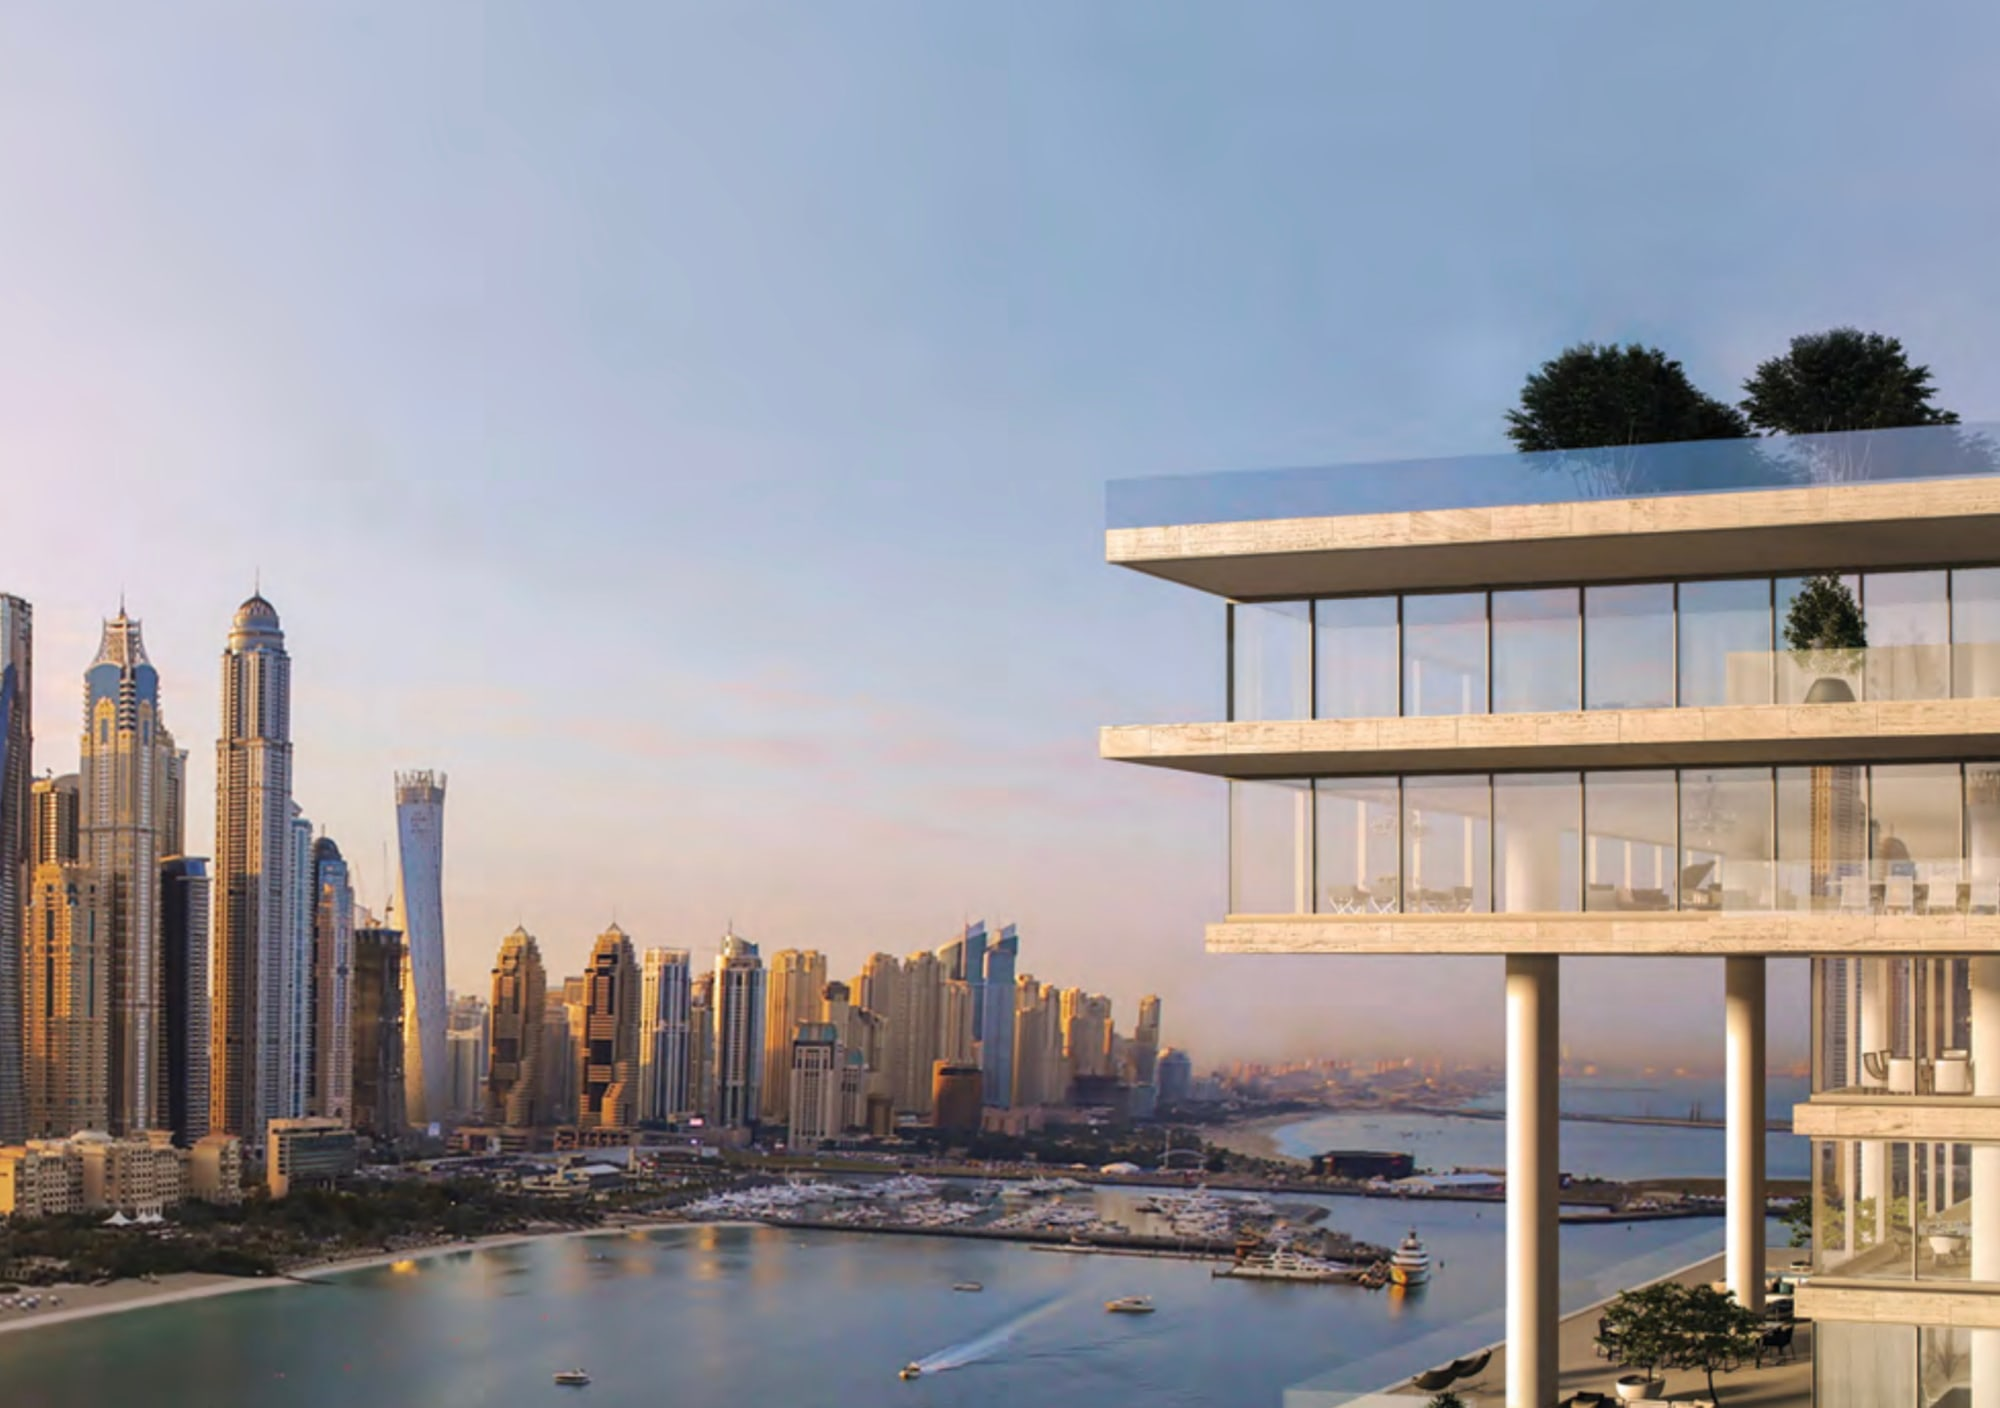 Super Potato Design | Beach and Dubai Skyline view